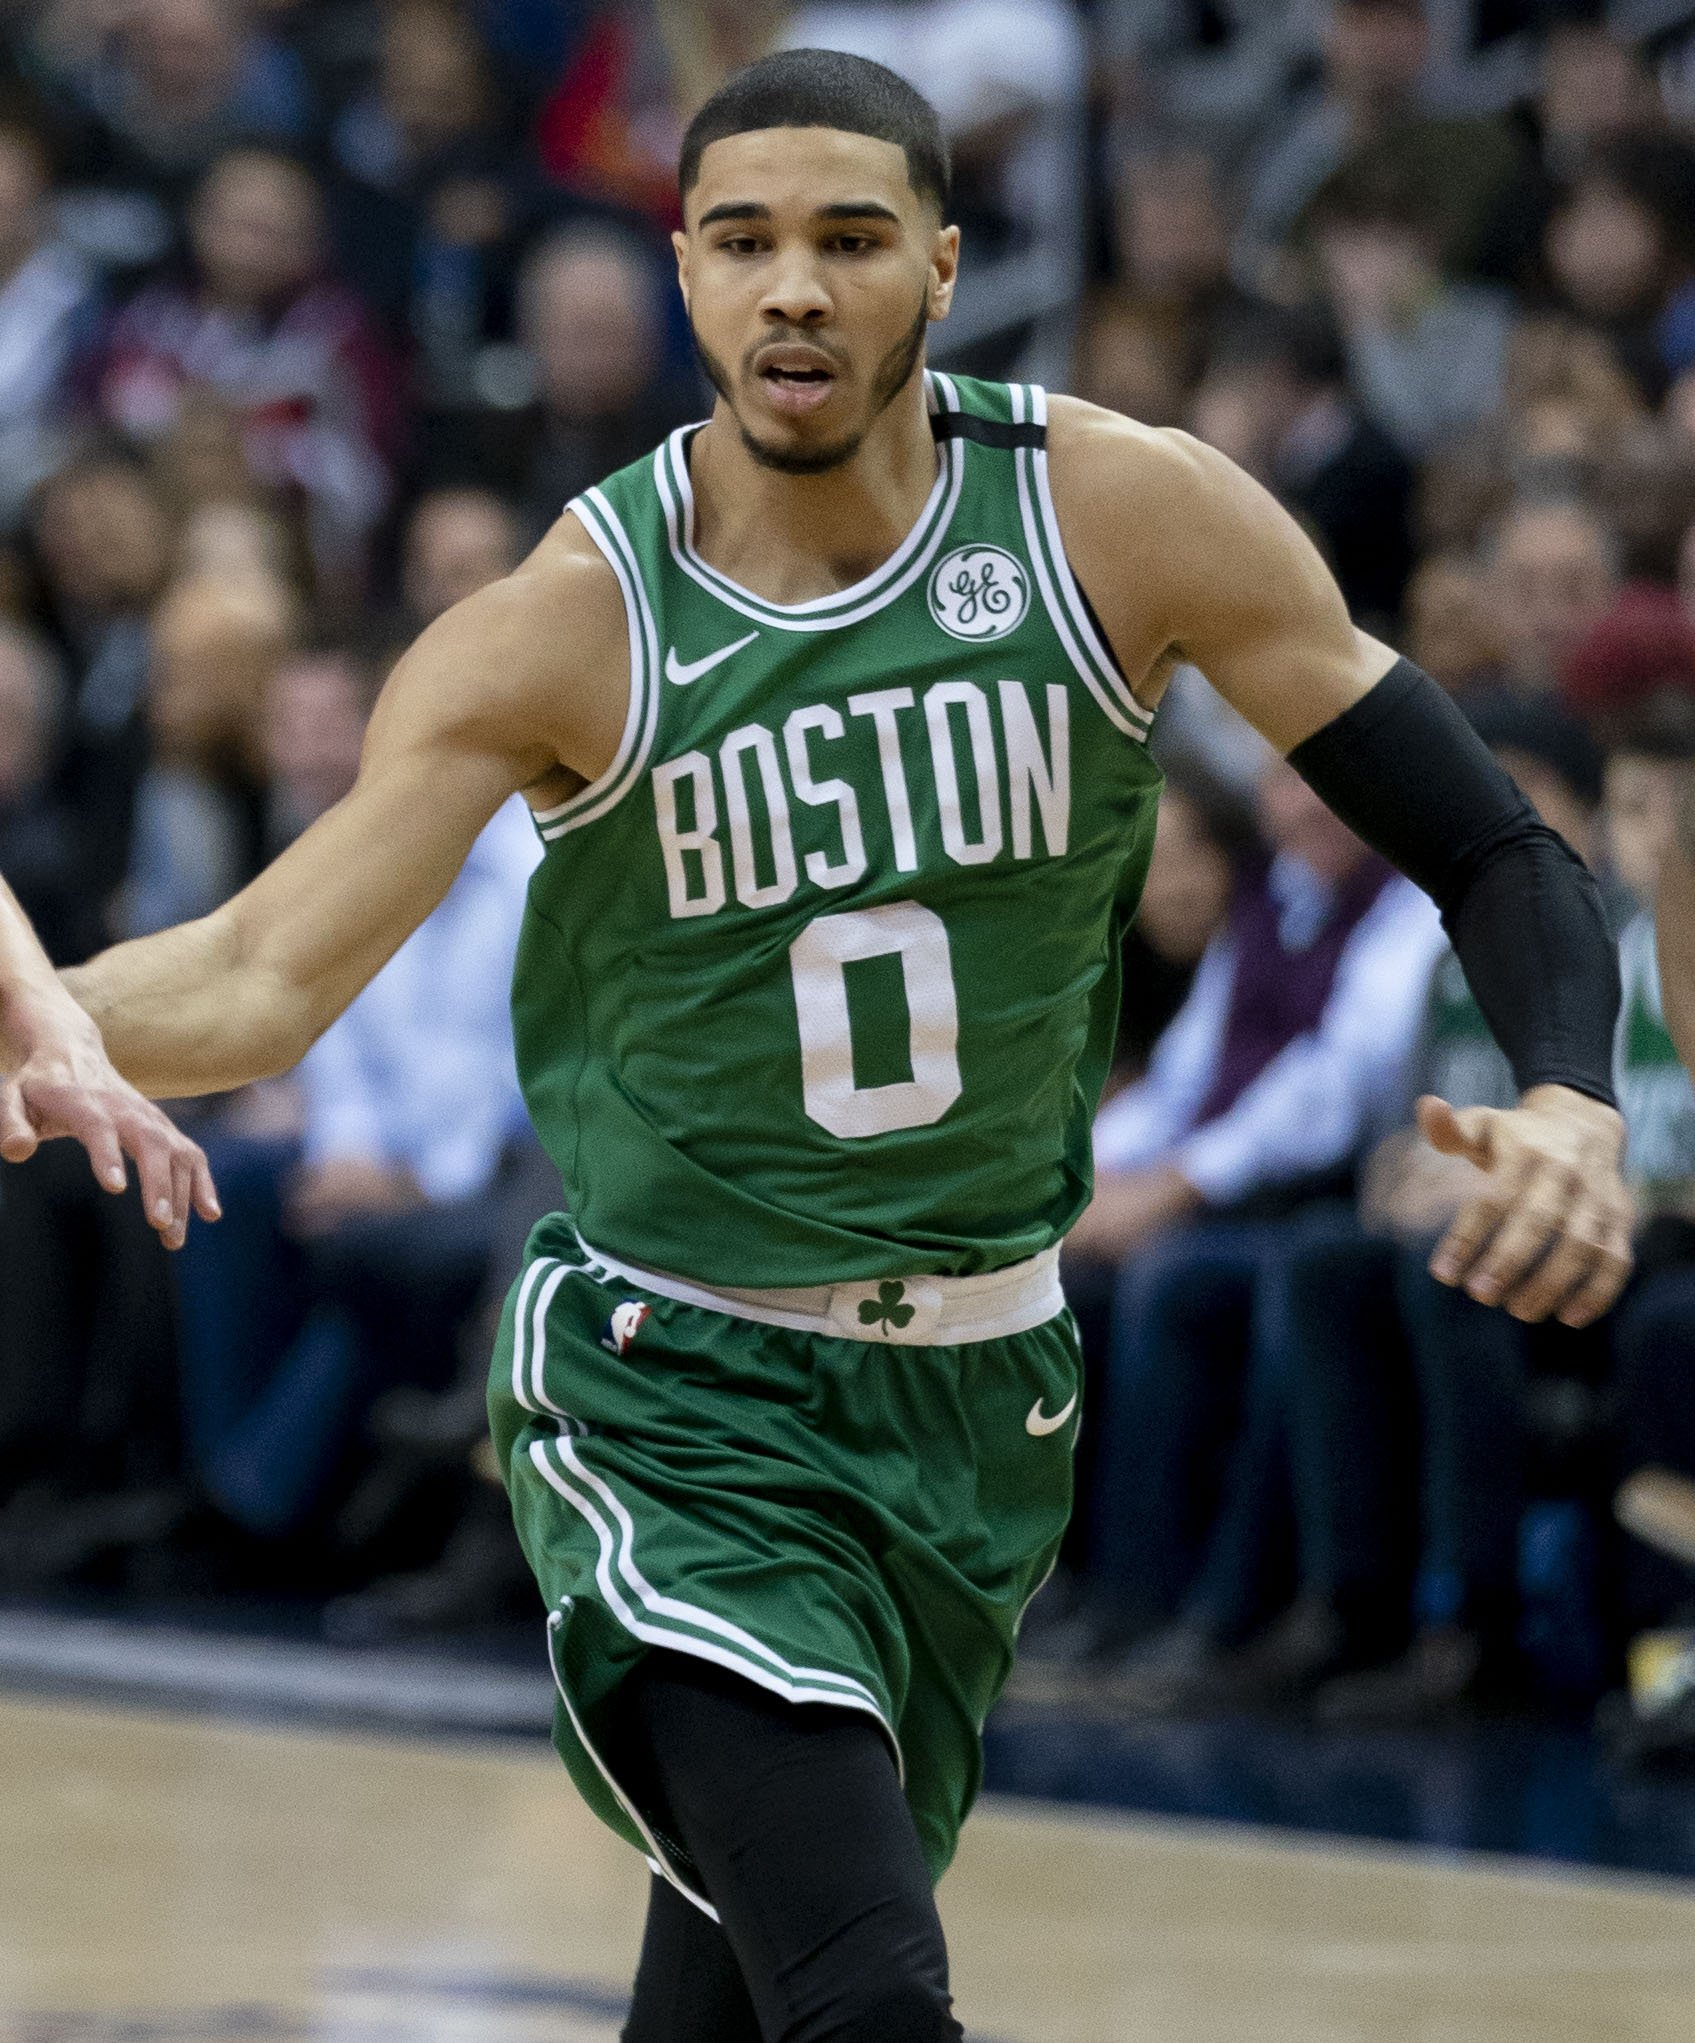 Jayson Tatum of the Celtics at a game against the Wizards on 8 October, 2018.  | Photo by Keith Allison, Jayson Tatum (2018), CC BY-SA 2.0, Wikimedia Commons